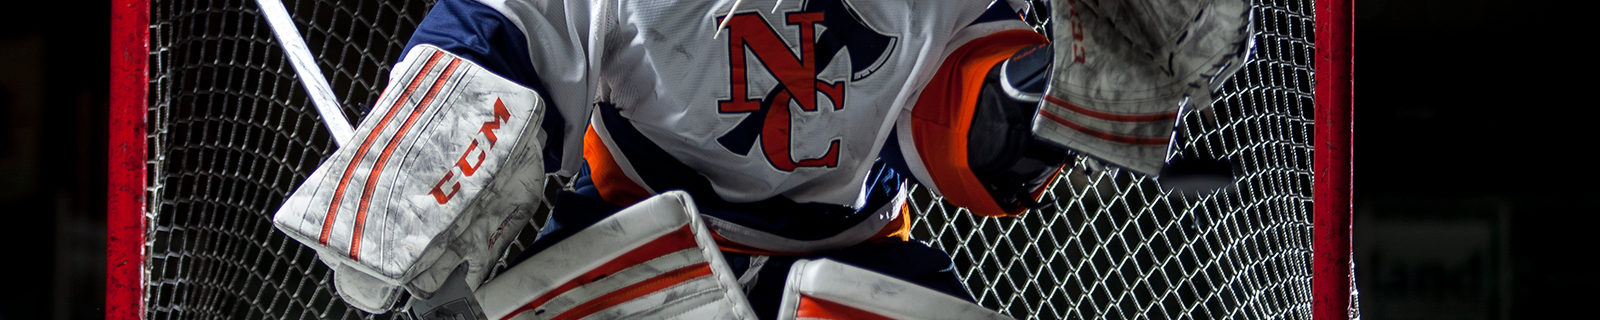 Northland College goalie blocks puck